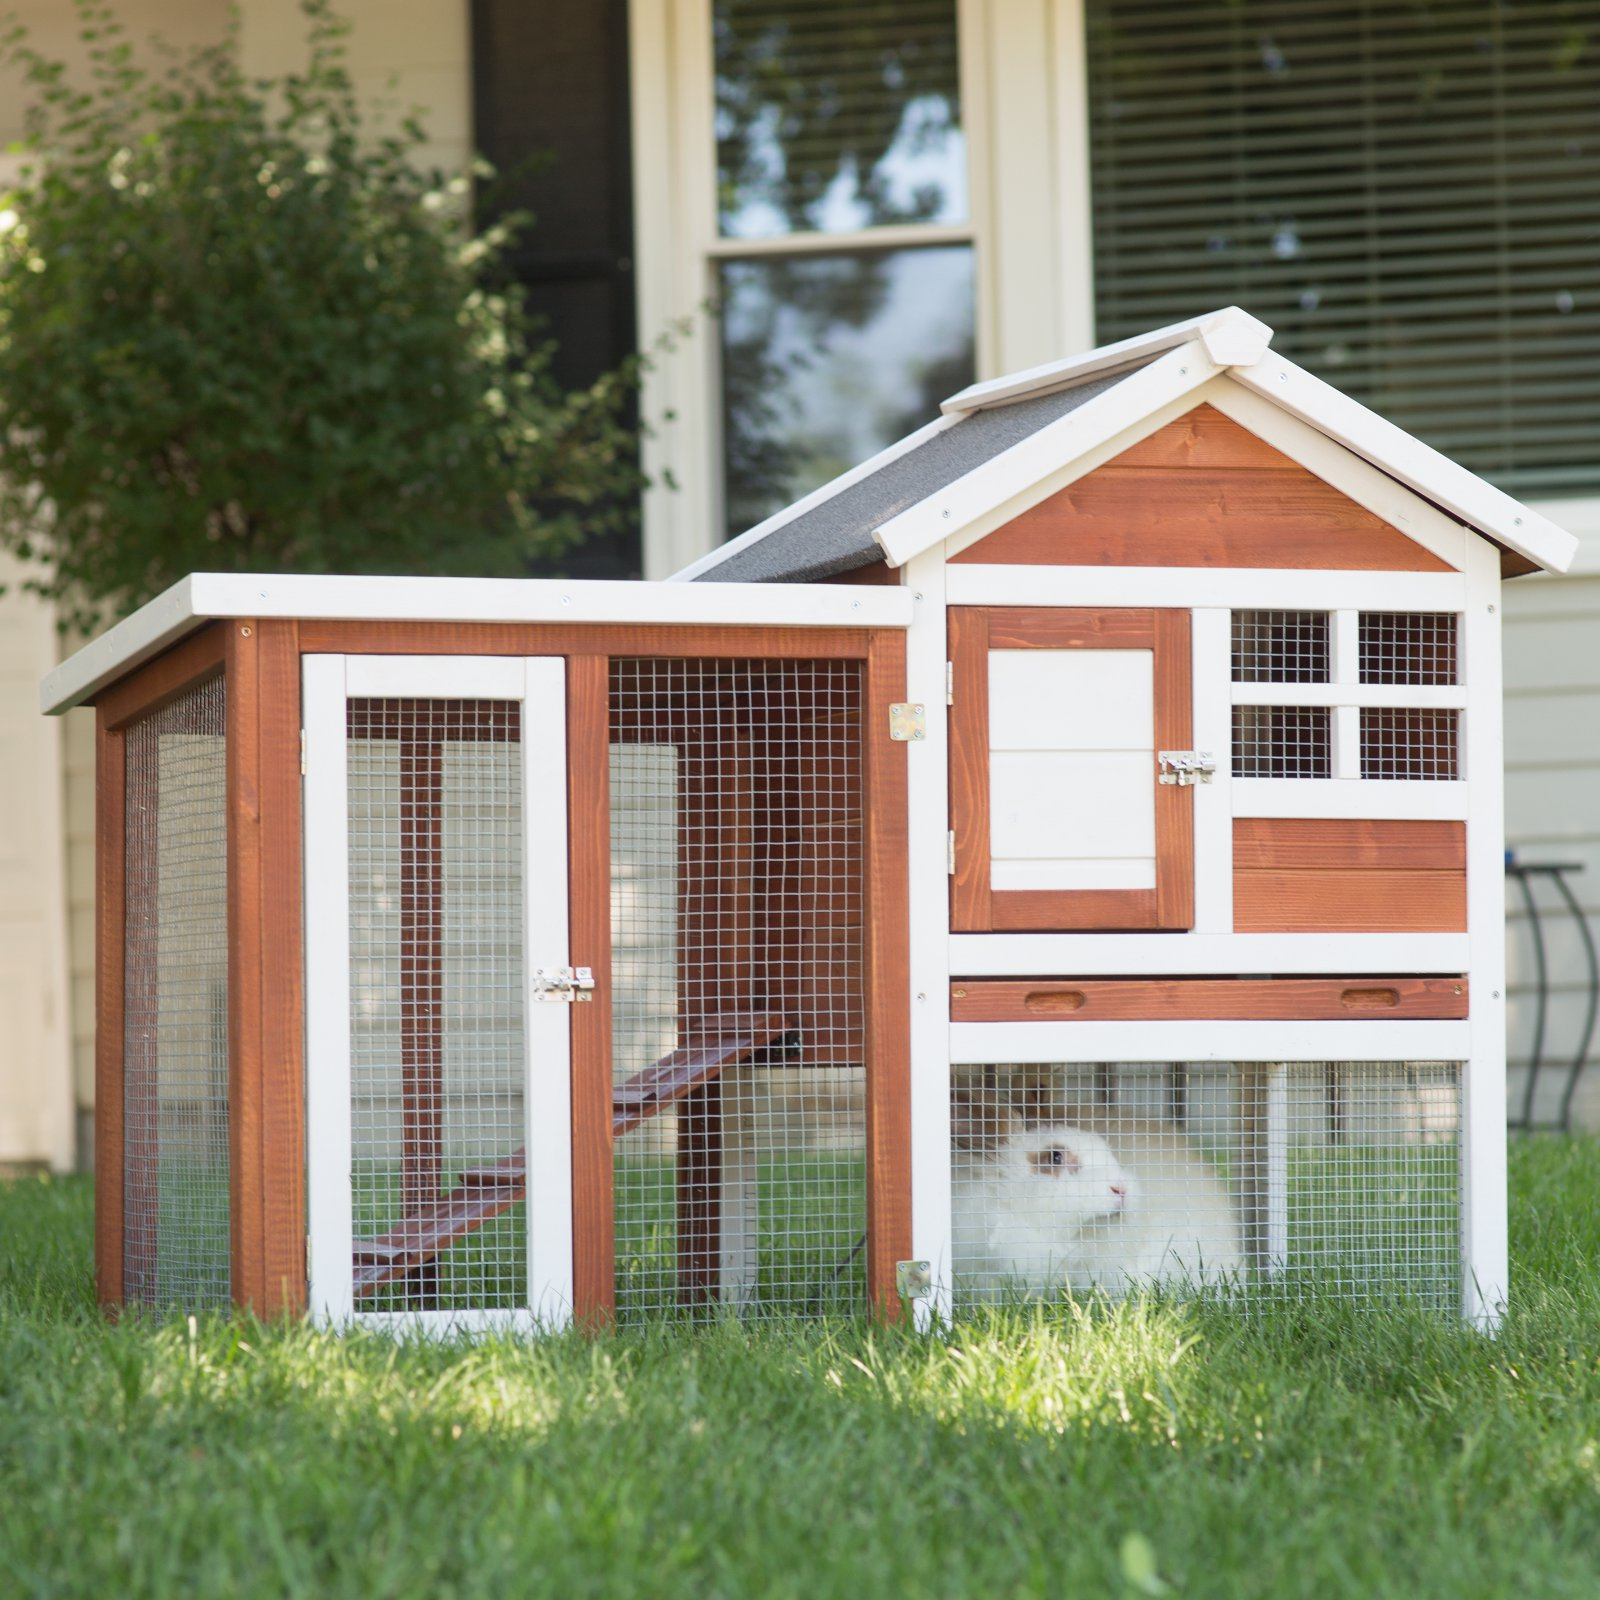 Boomer & George Elevated Rabbit Hutch by